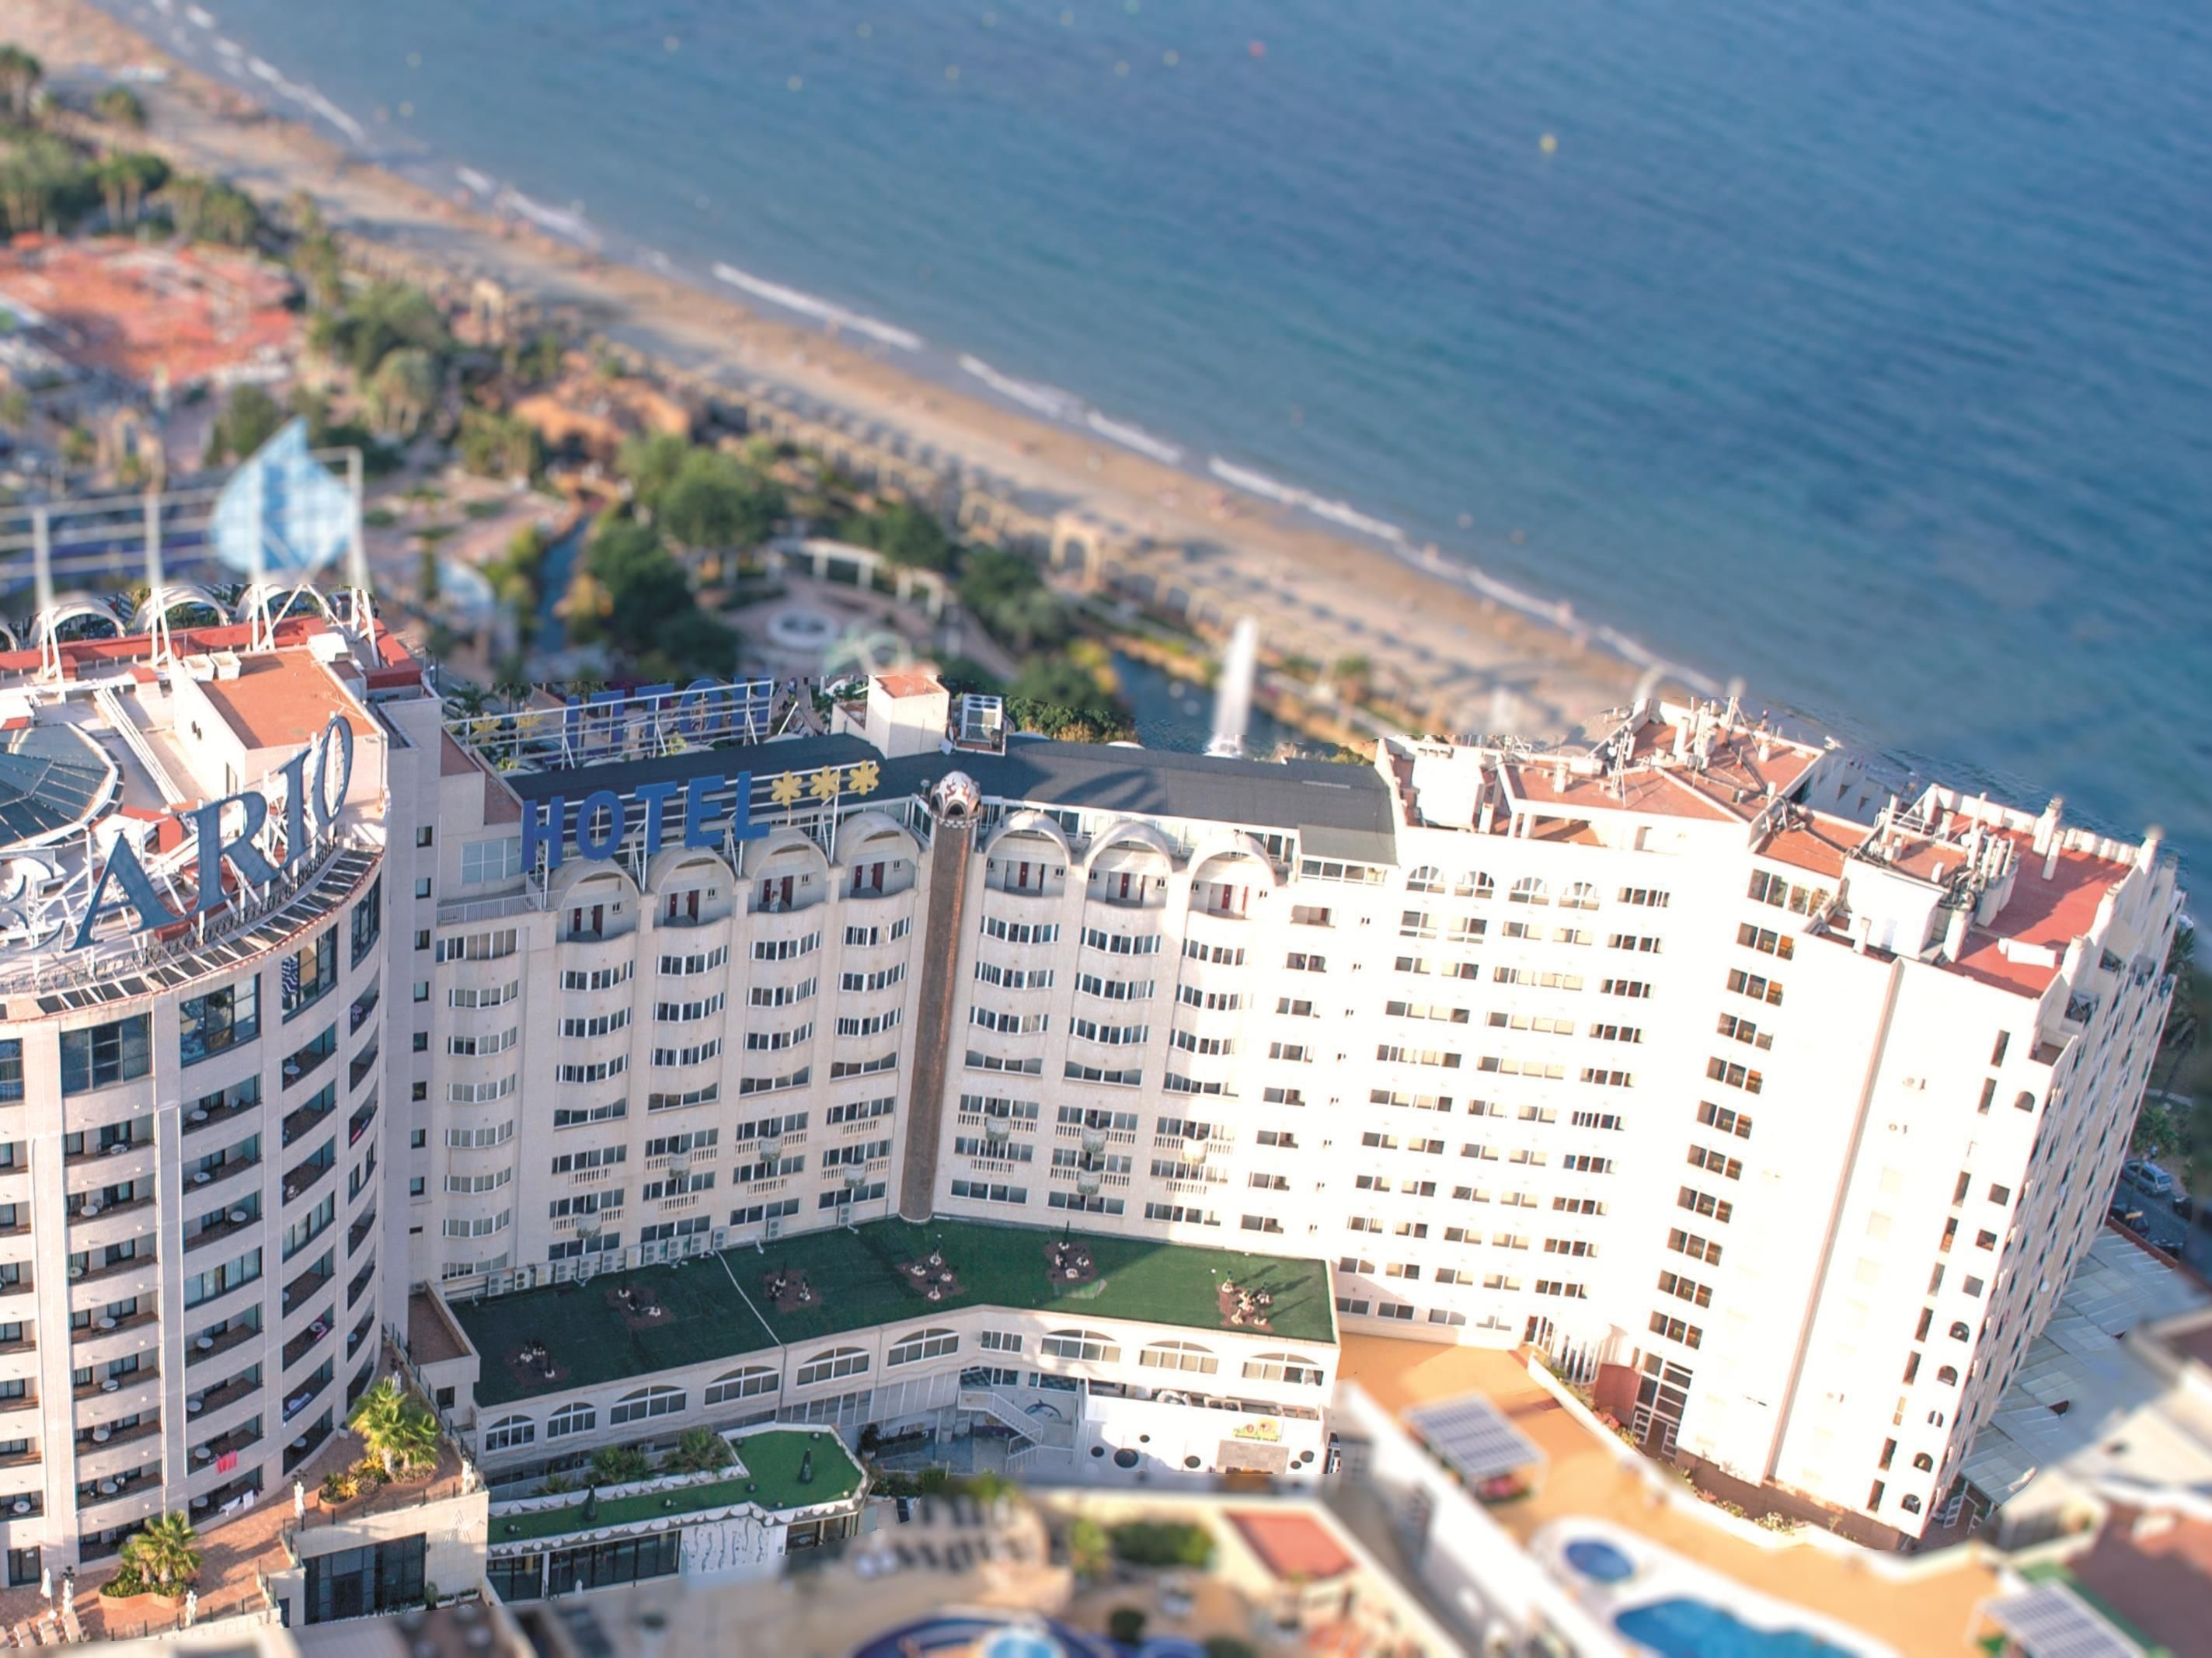 Oropesa Del Mar Hotel Marina D Or 3 Spain Europe Hotel Marina D Or 3 Is Conveniently Located In The Popular Marina D Or Area The P Europe Hotels Hotel Europe